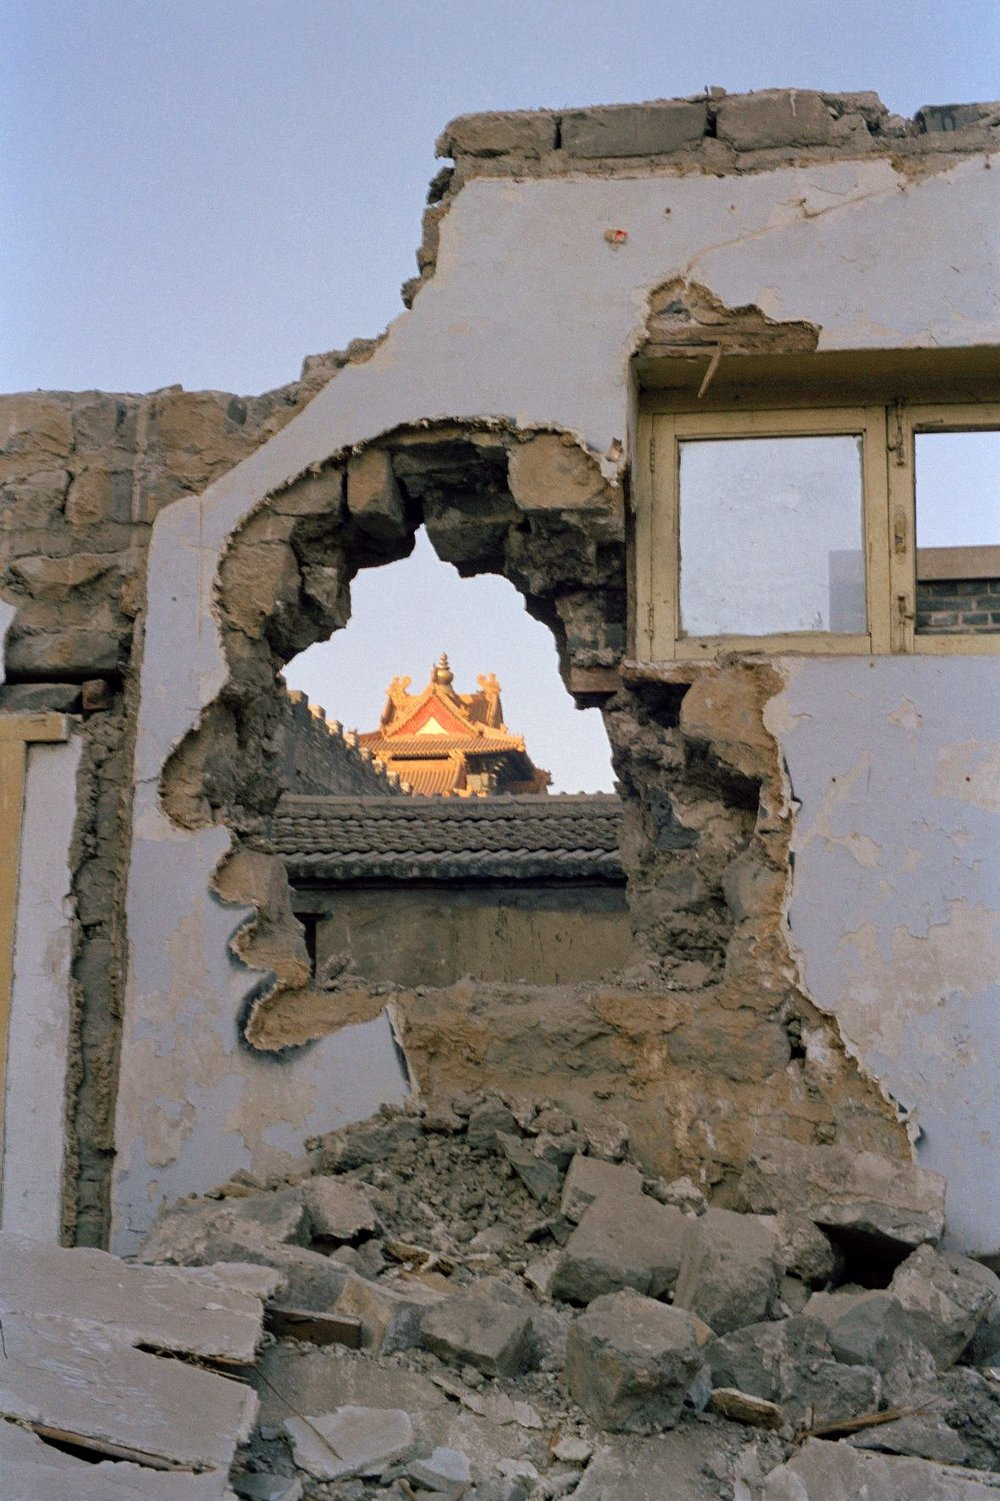 Zhang Dali, Dialogue and demolition; Demolition: Forbidden City